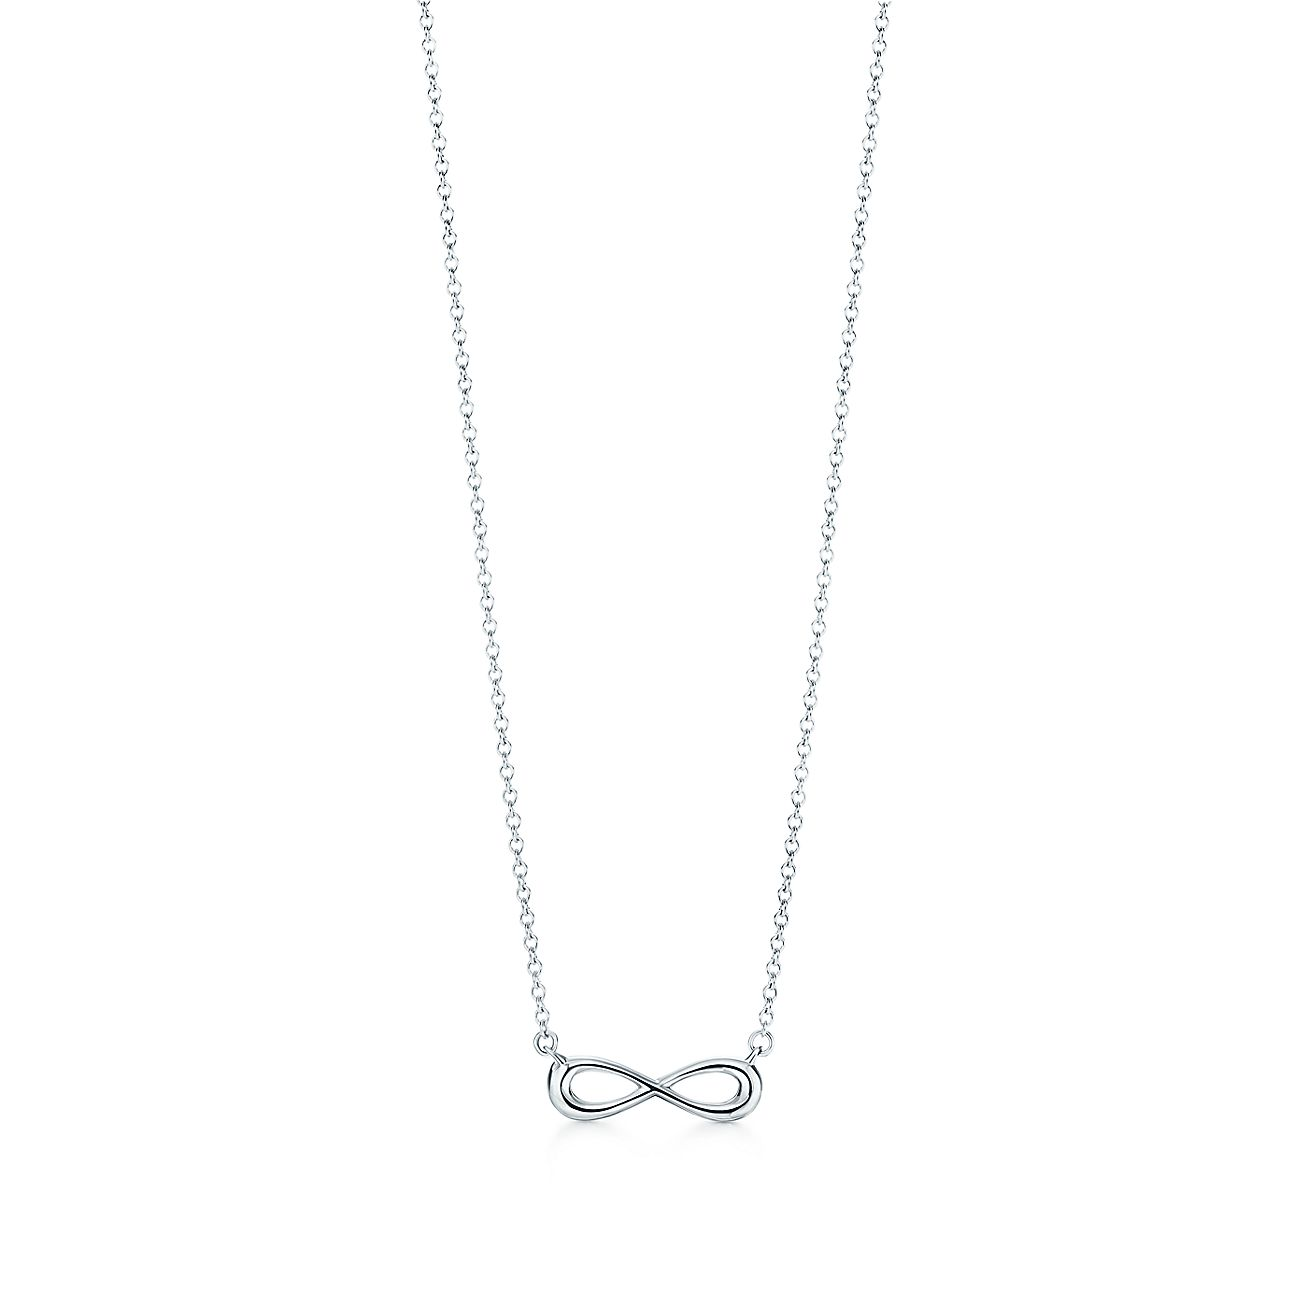 Tiffany Infinity pendant in sterling silver, mini. | Tiffany